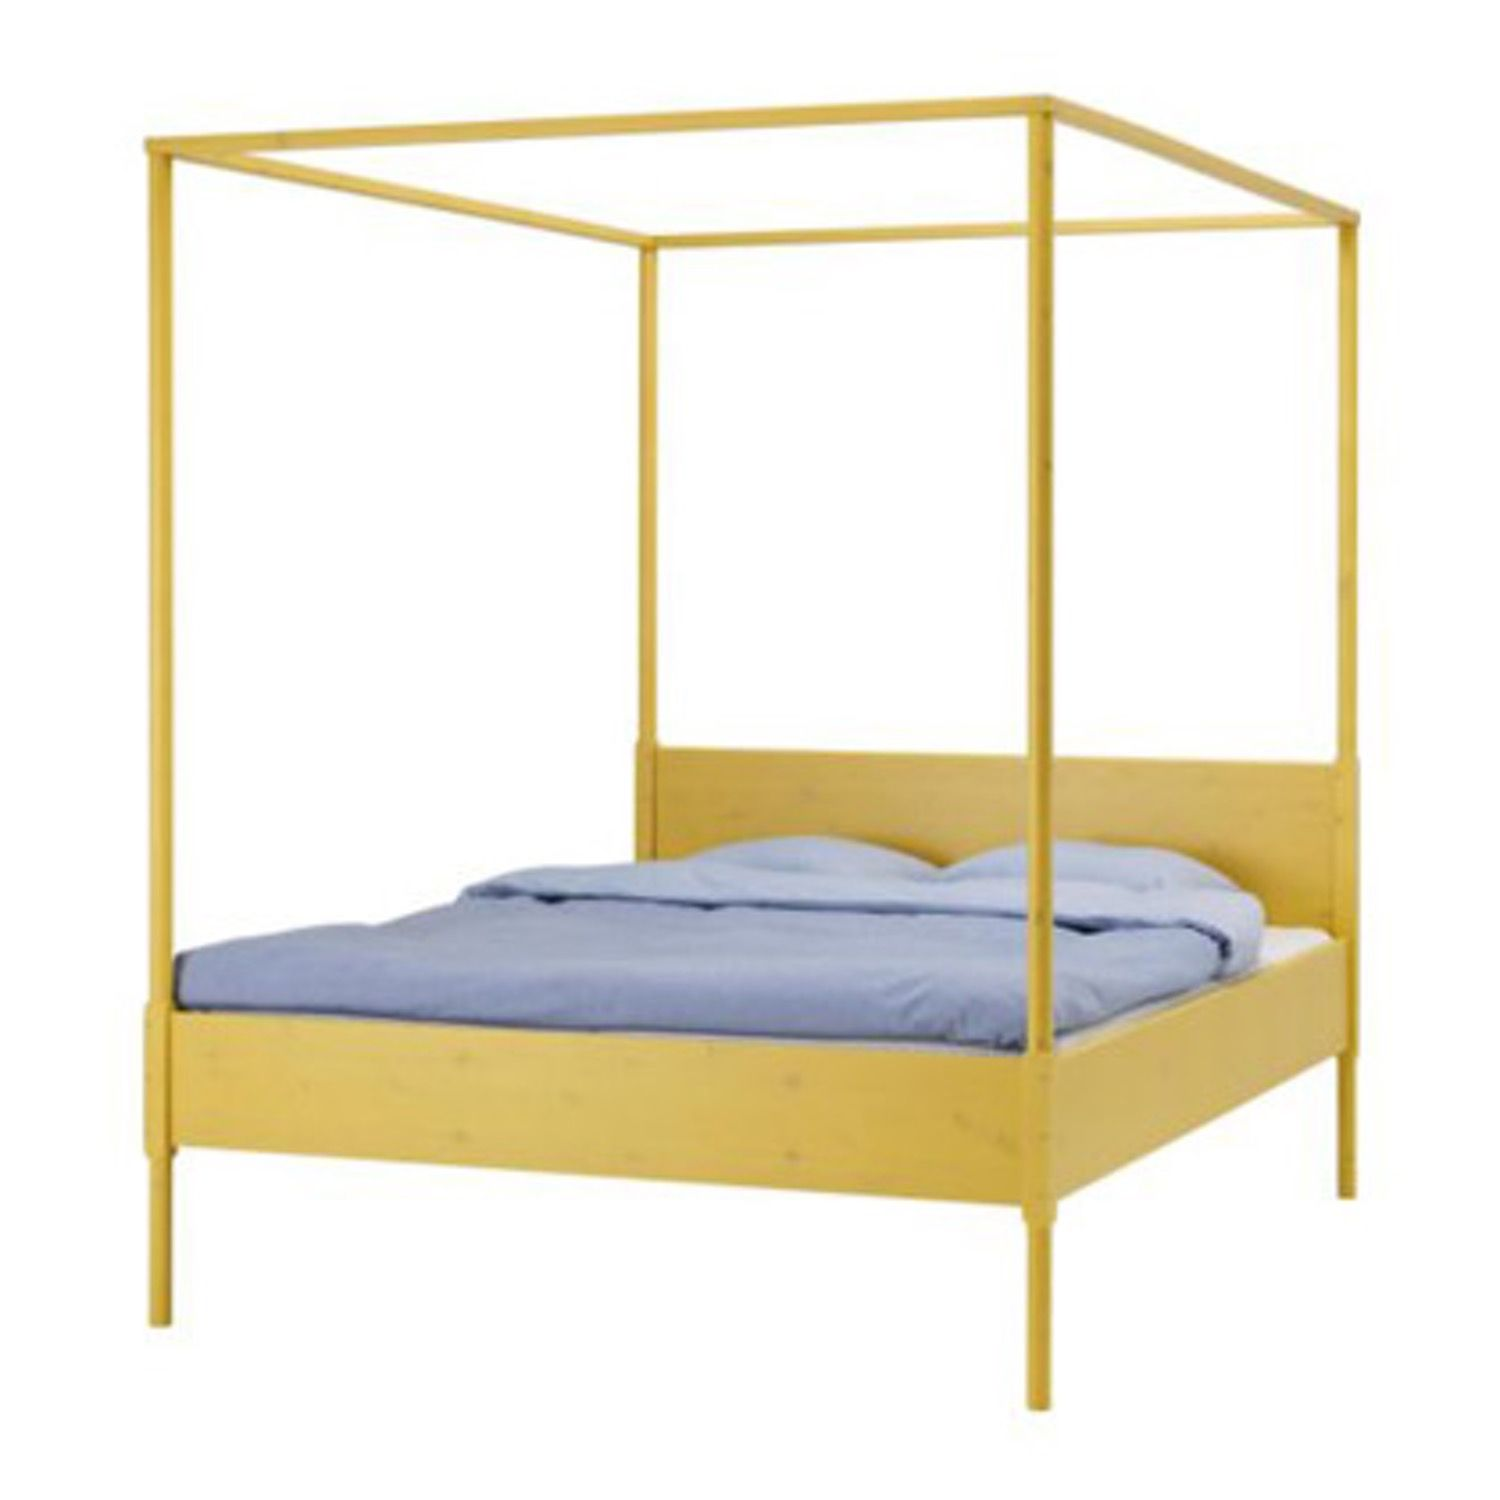 Hemnes Four-poster Bed Frame at Ikea | HEMNES and Bed frames